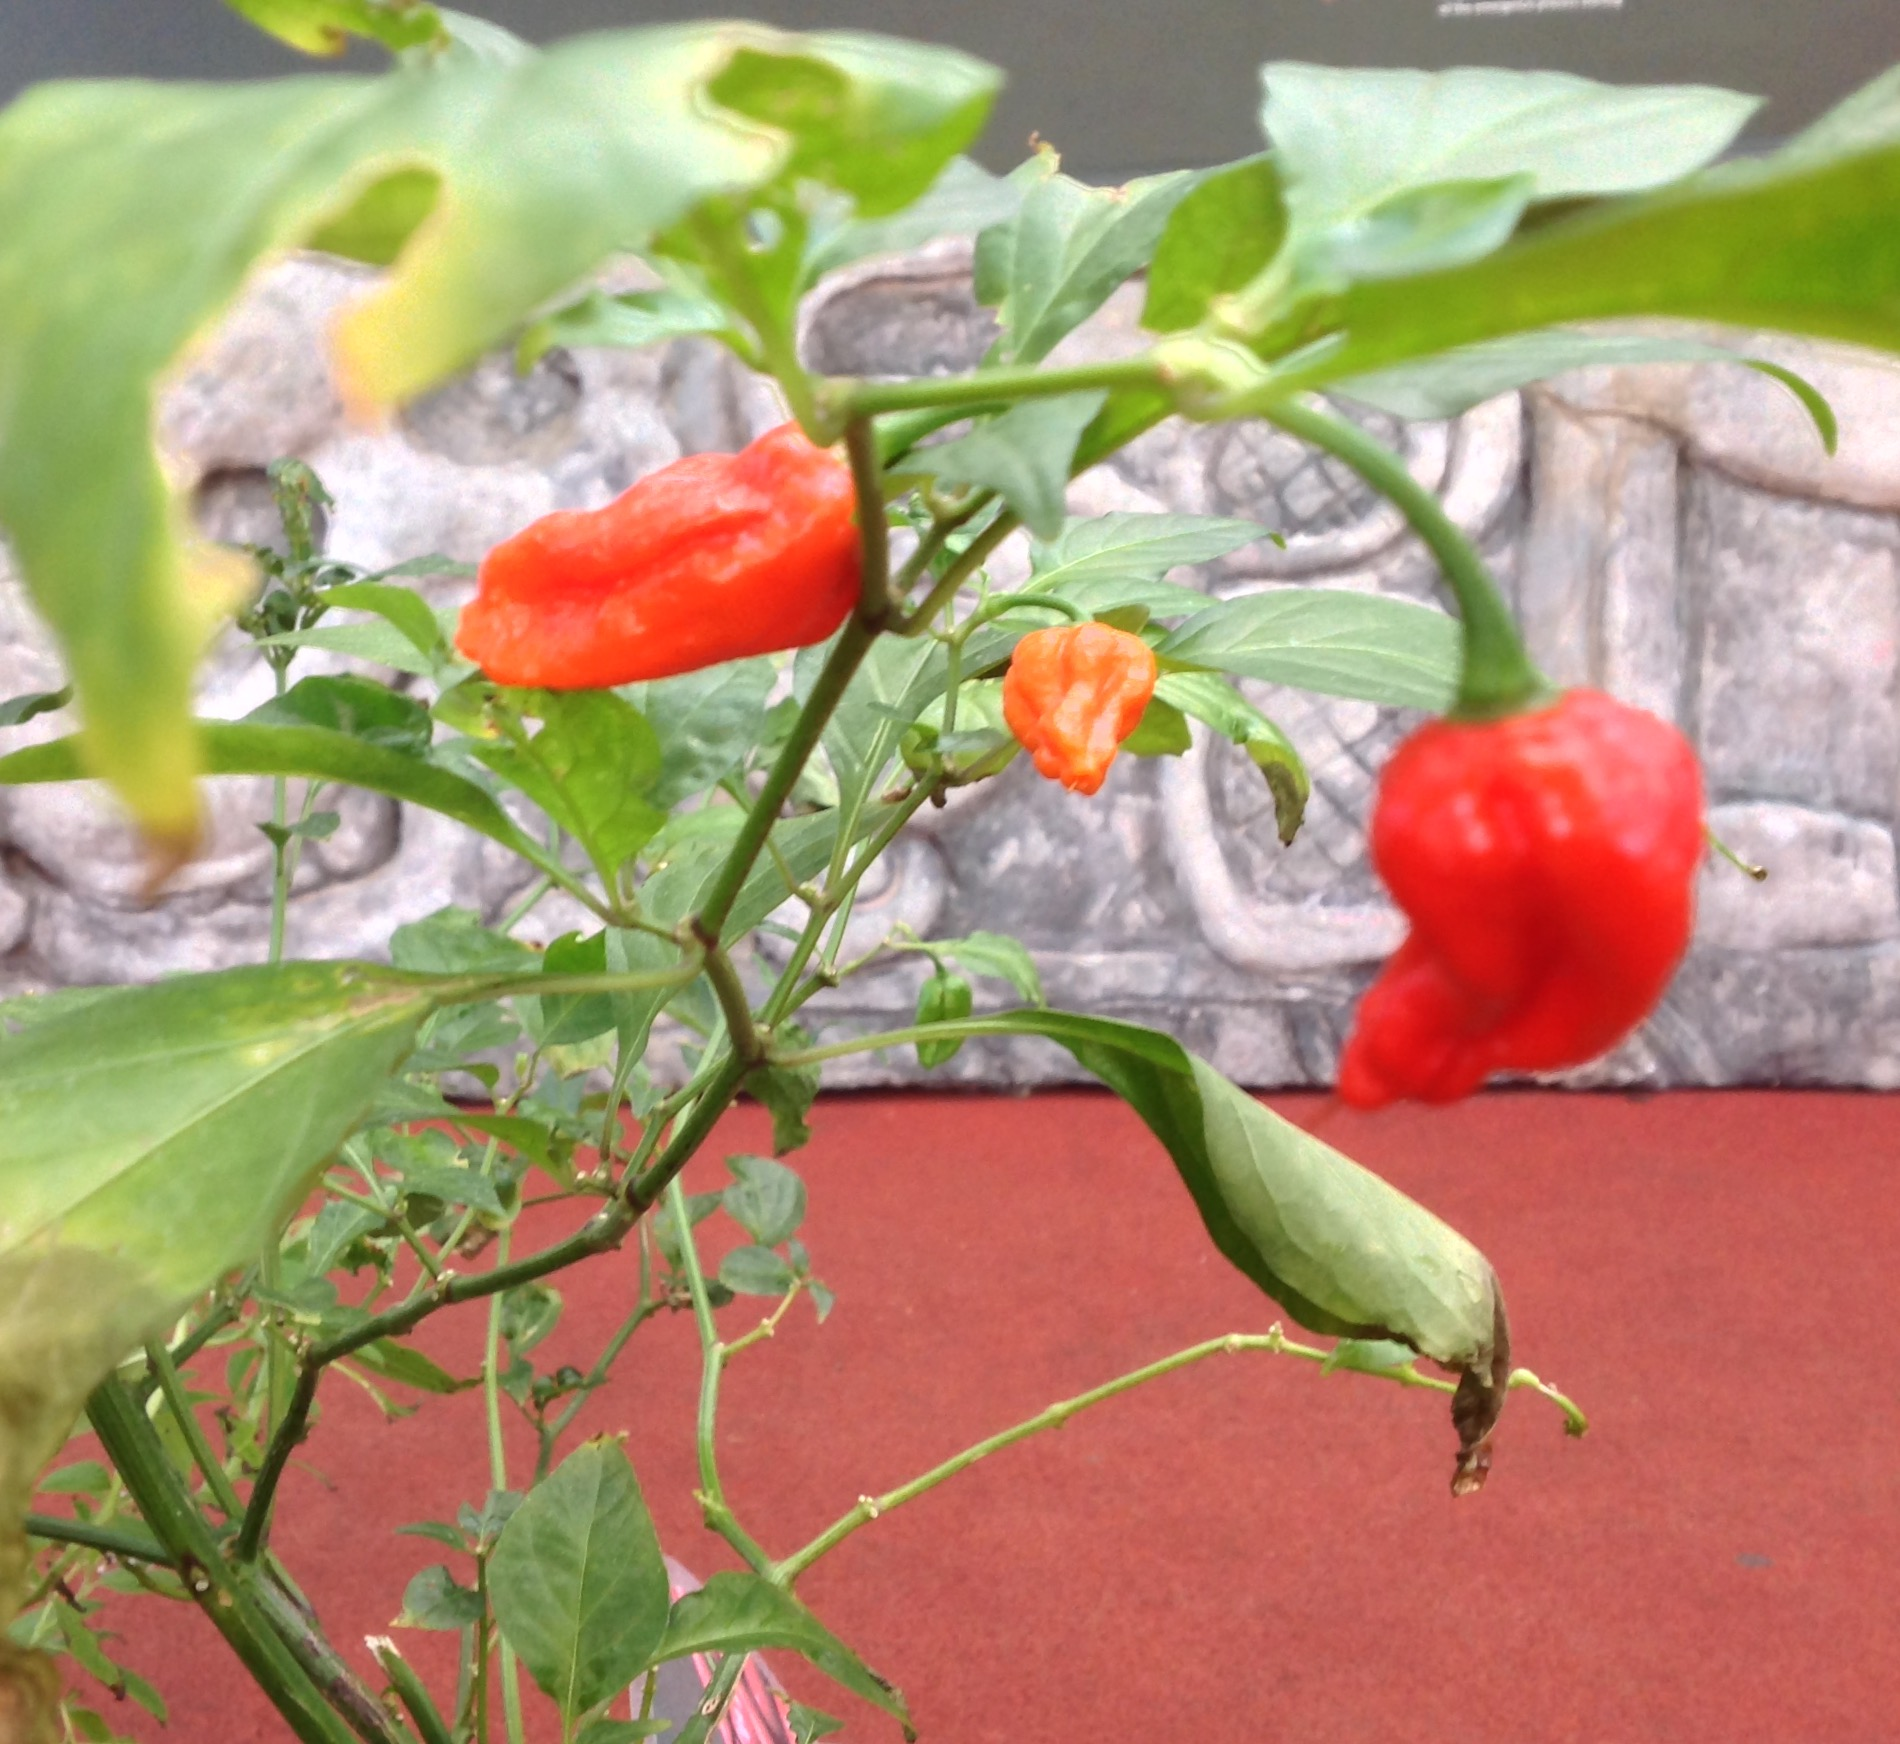 Chilli Peppers in the Discovery Zone